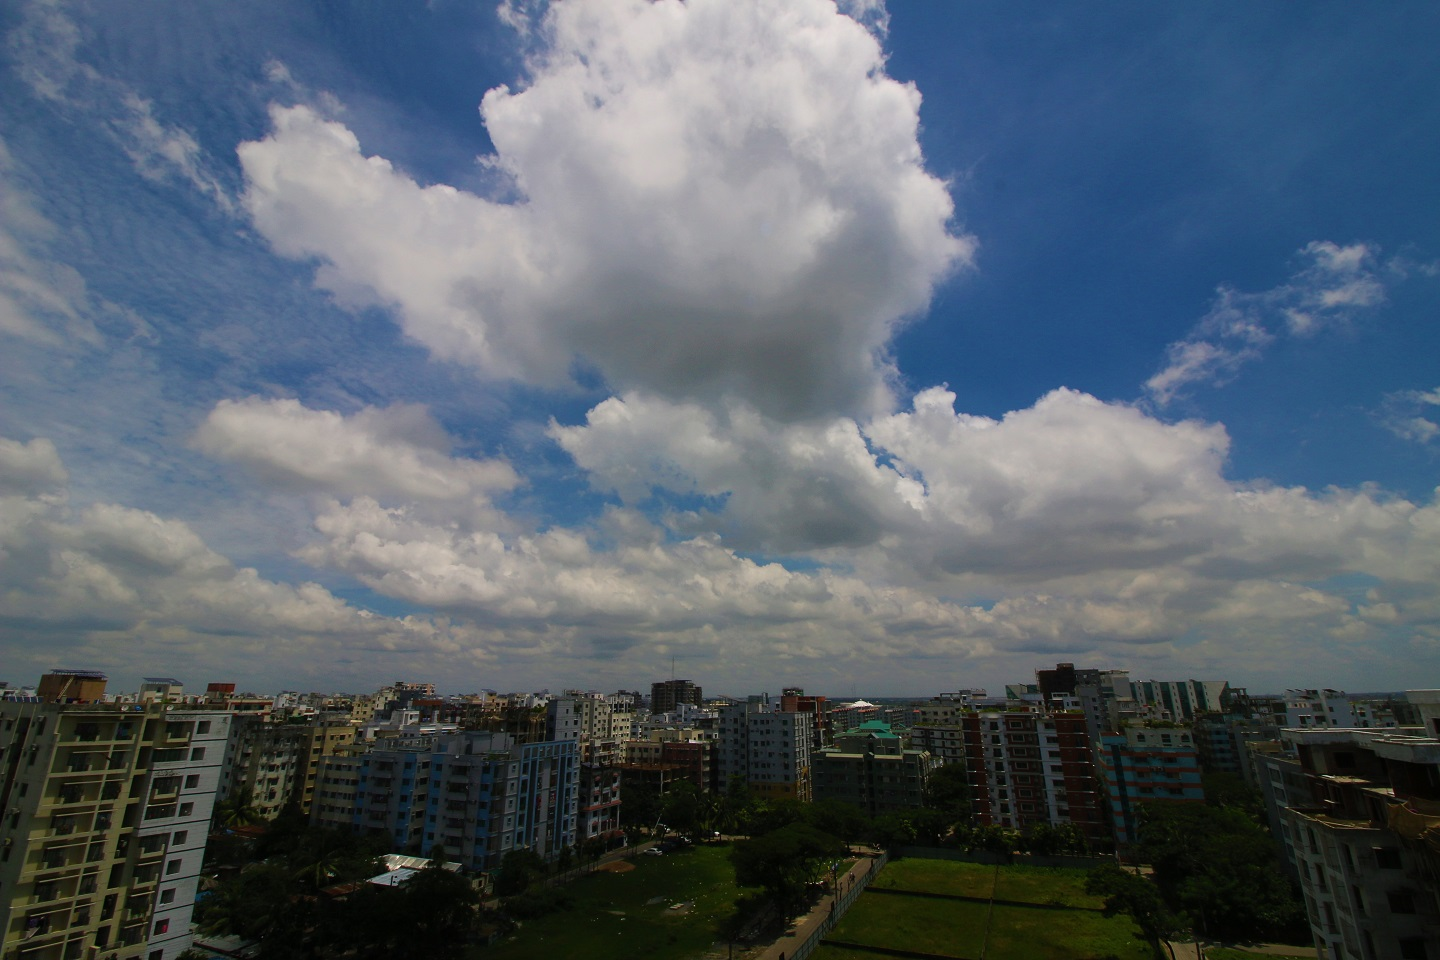 Expats moving to Dhaka should take a note of the weather and make necessary arrangements